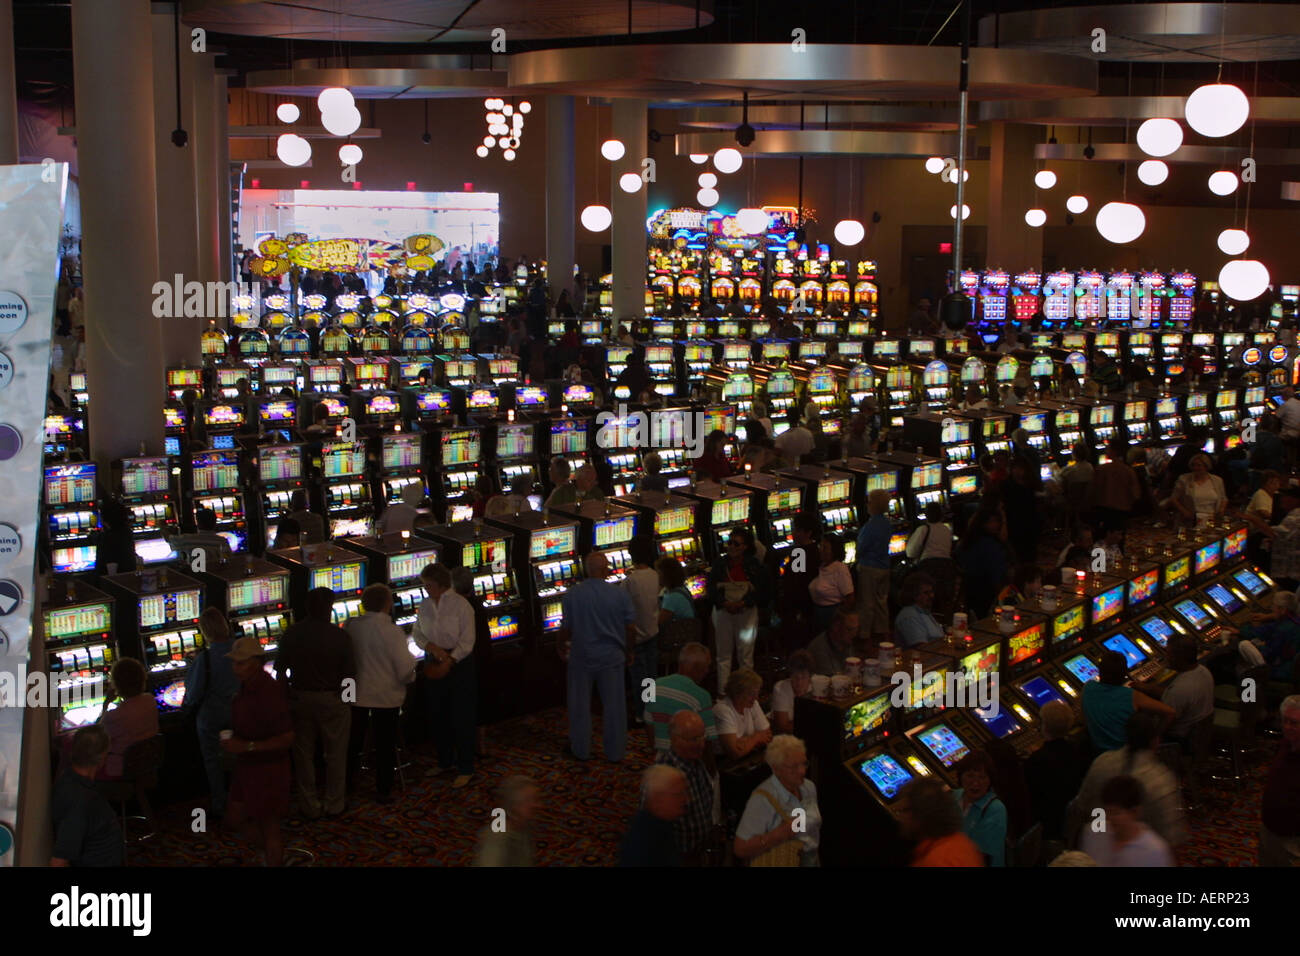 29 casino california new casino sites